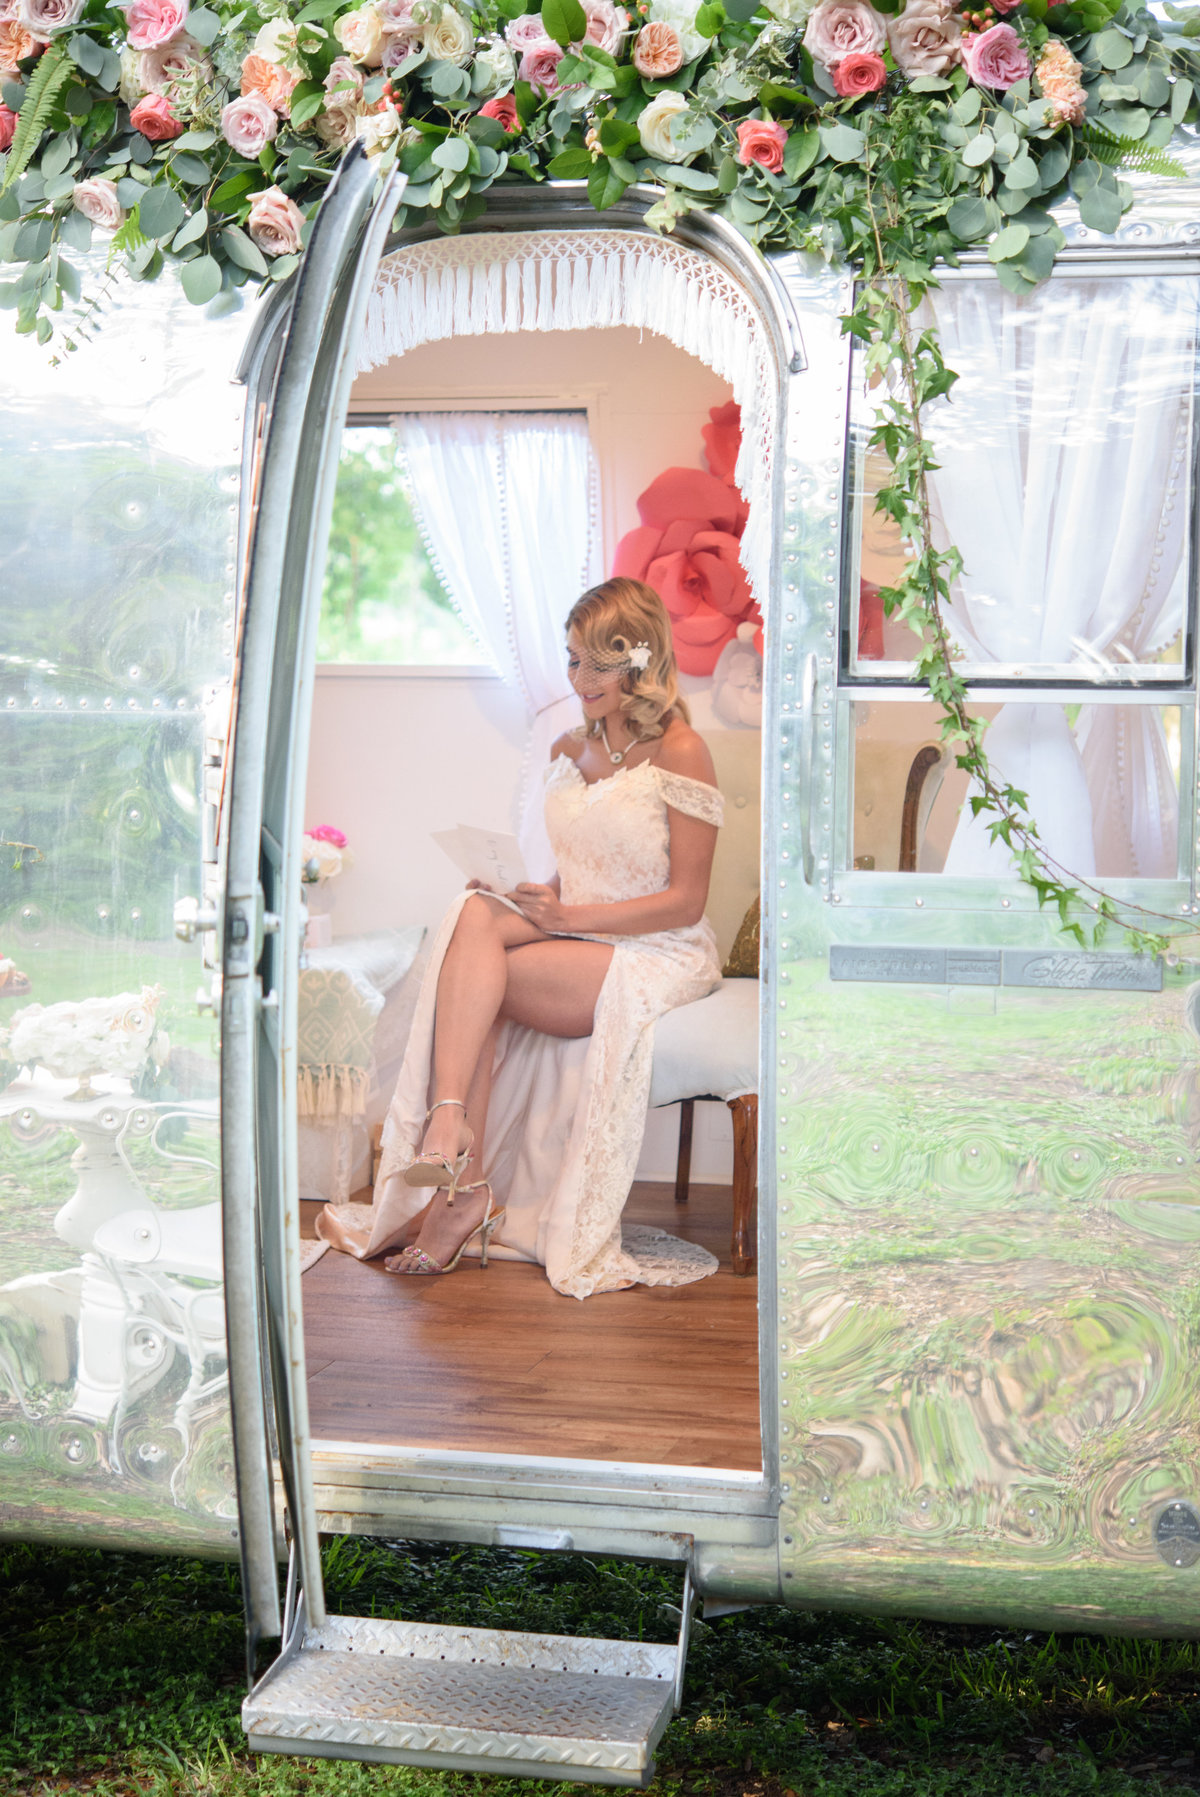 Miami Florida | Bridal Boudoir Photographer 22